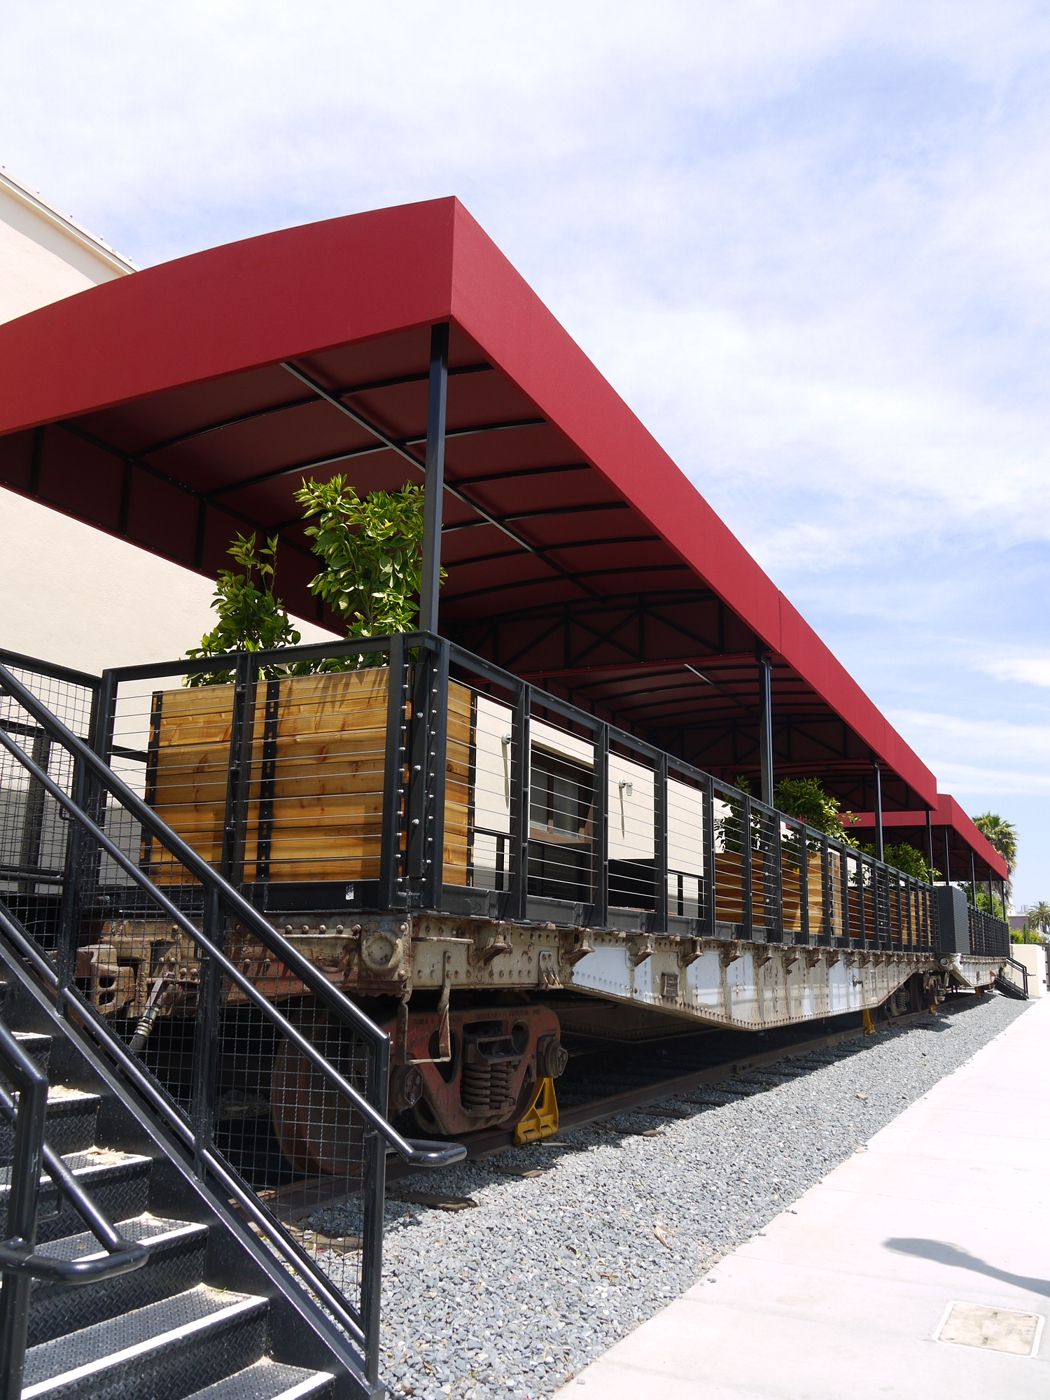 06 Packing House Rail Car - Anaheim Packing District